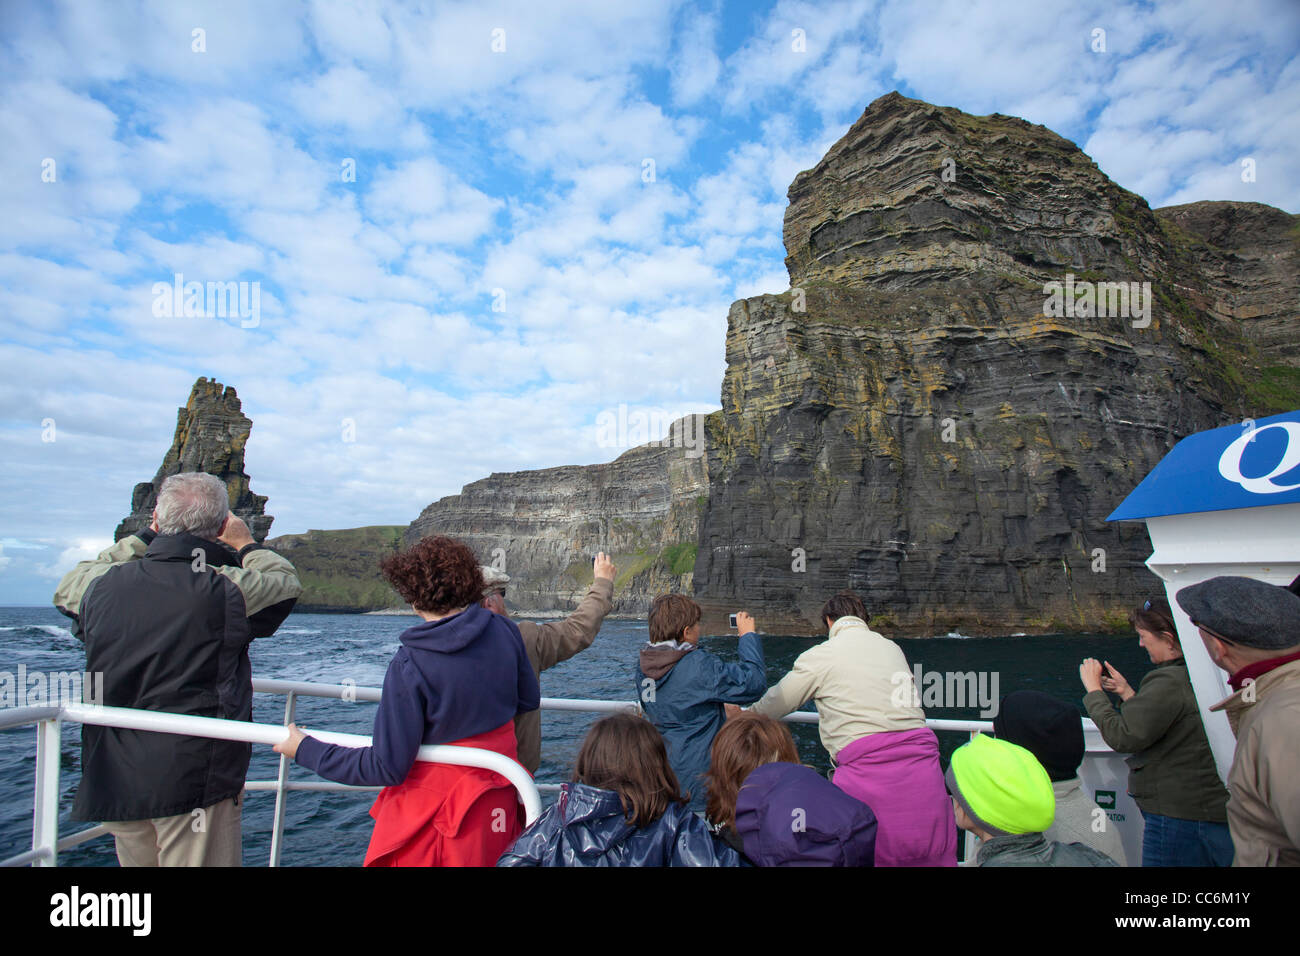 Tourists admiring the Cliffs of Moher from a scenic boat tour, County Clare, Ireland. - Stock Image